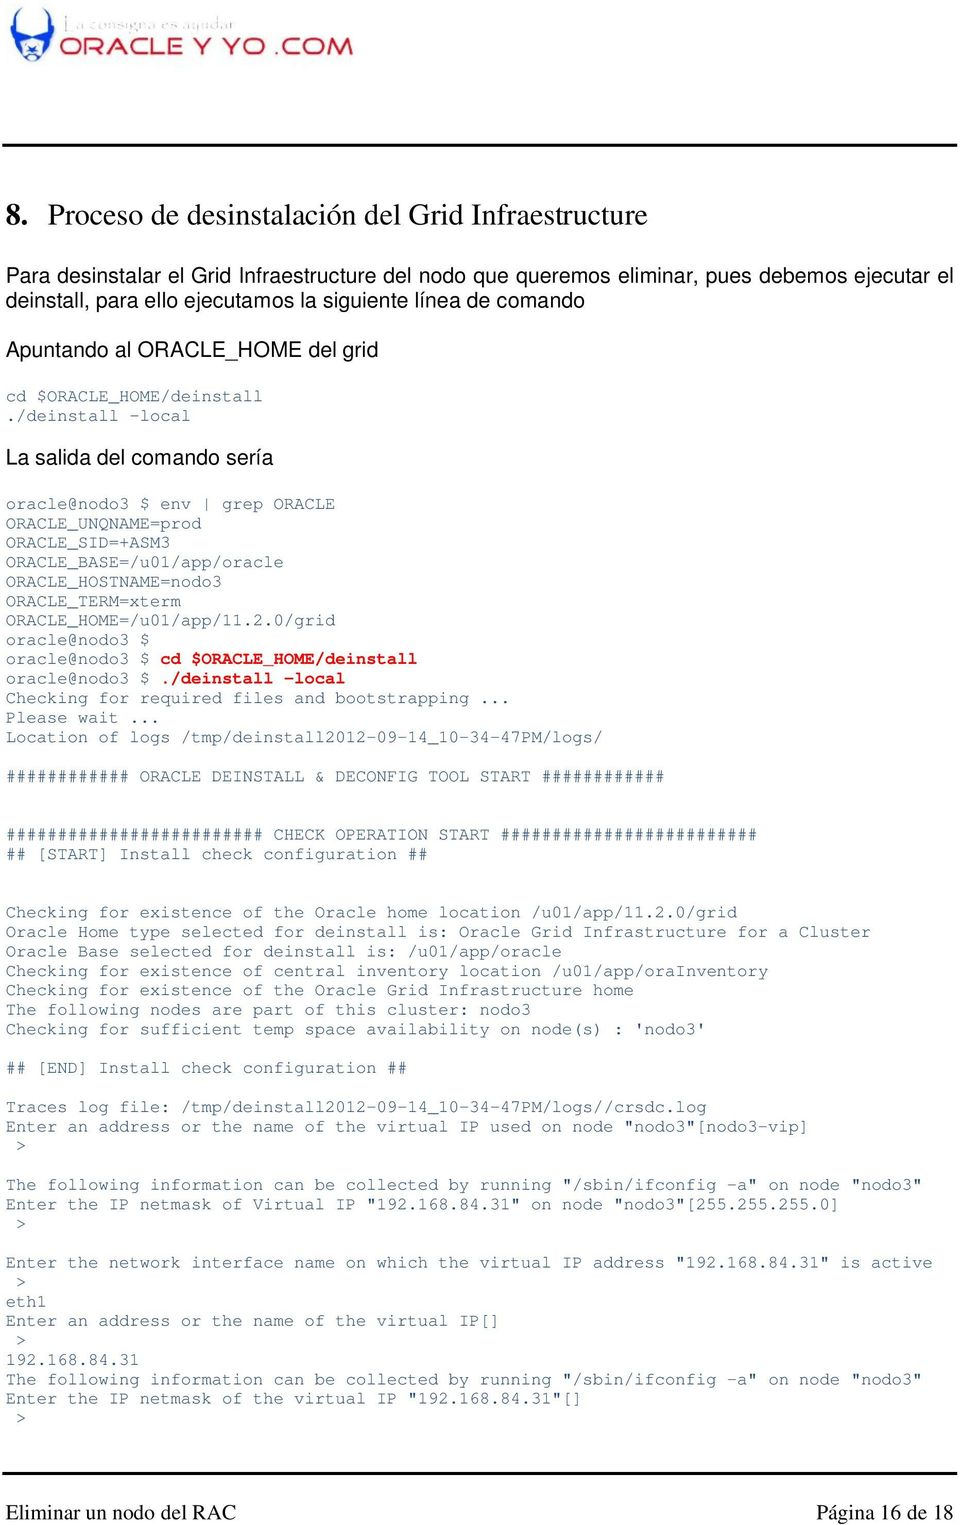 /deinstall local La salida del comando sería env grep ORACLE ORACLE_UNQNAME=prod ORACLE_SID=+ASM3 ORACLE_BASE=/u01/app/oracle ORACLE_HOSTNAME=nodo3 ORACLE_TERM=xterm ORACLE_HOME=/u01/app/11.2.